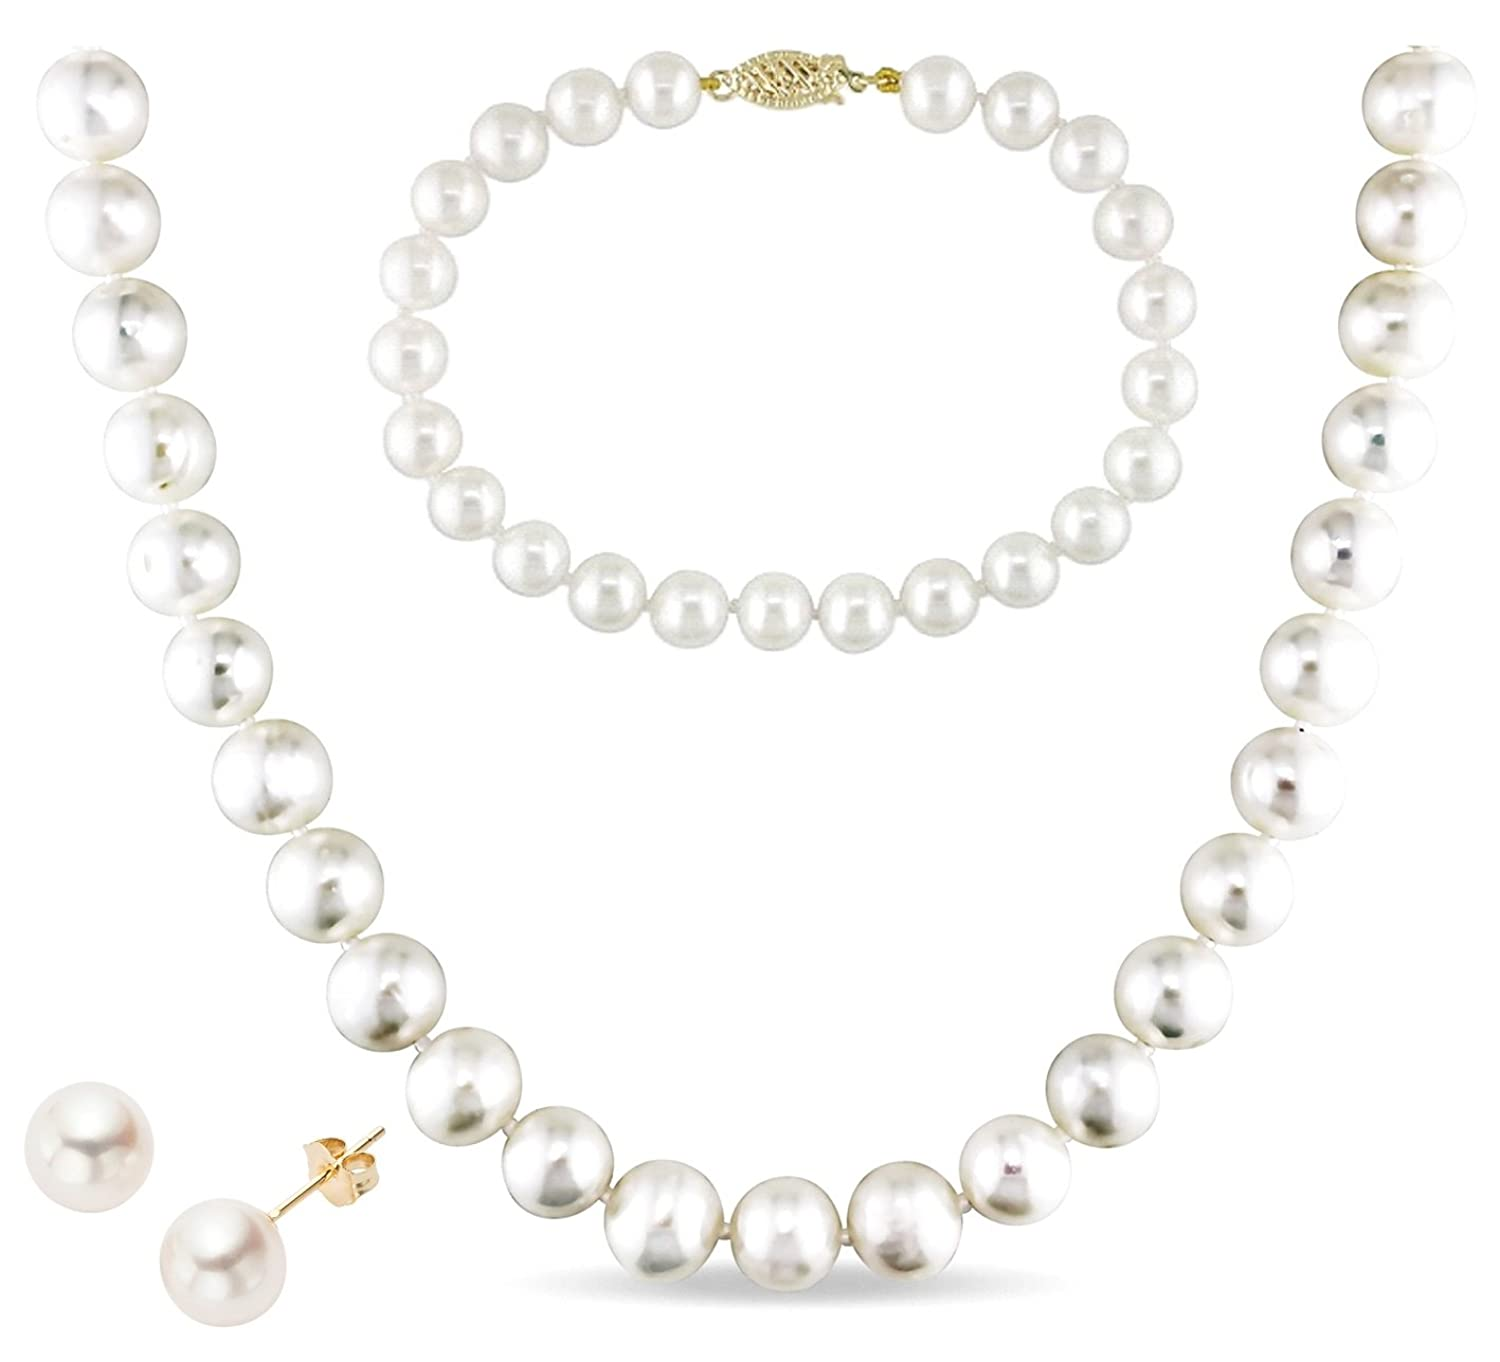 14k Gold 8-9mm White Freshwater Cultured AA-Quality Pearl Necklace, Bracelet and Earrings Set